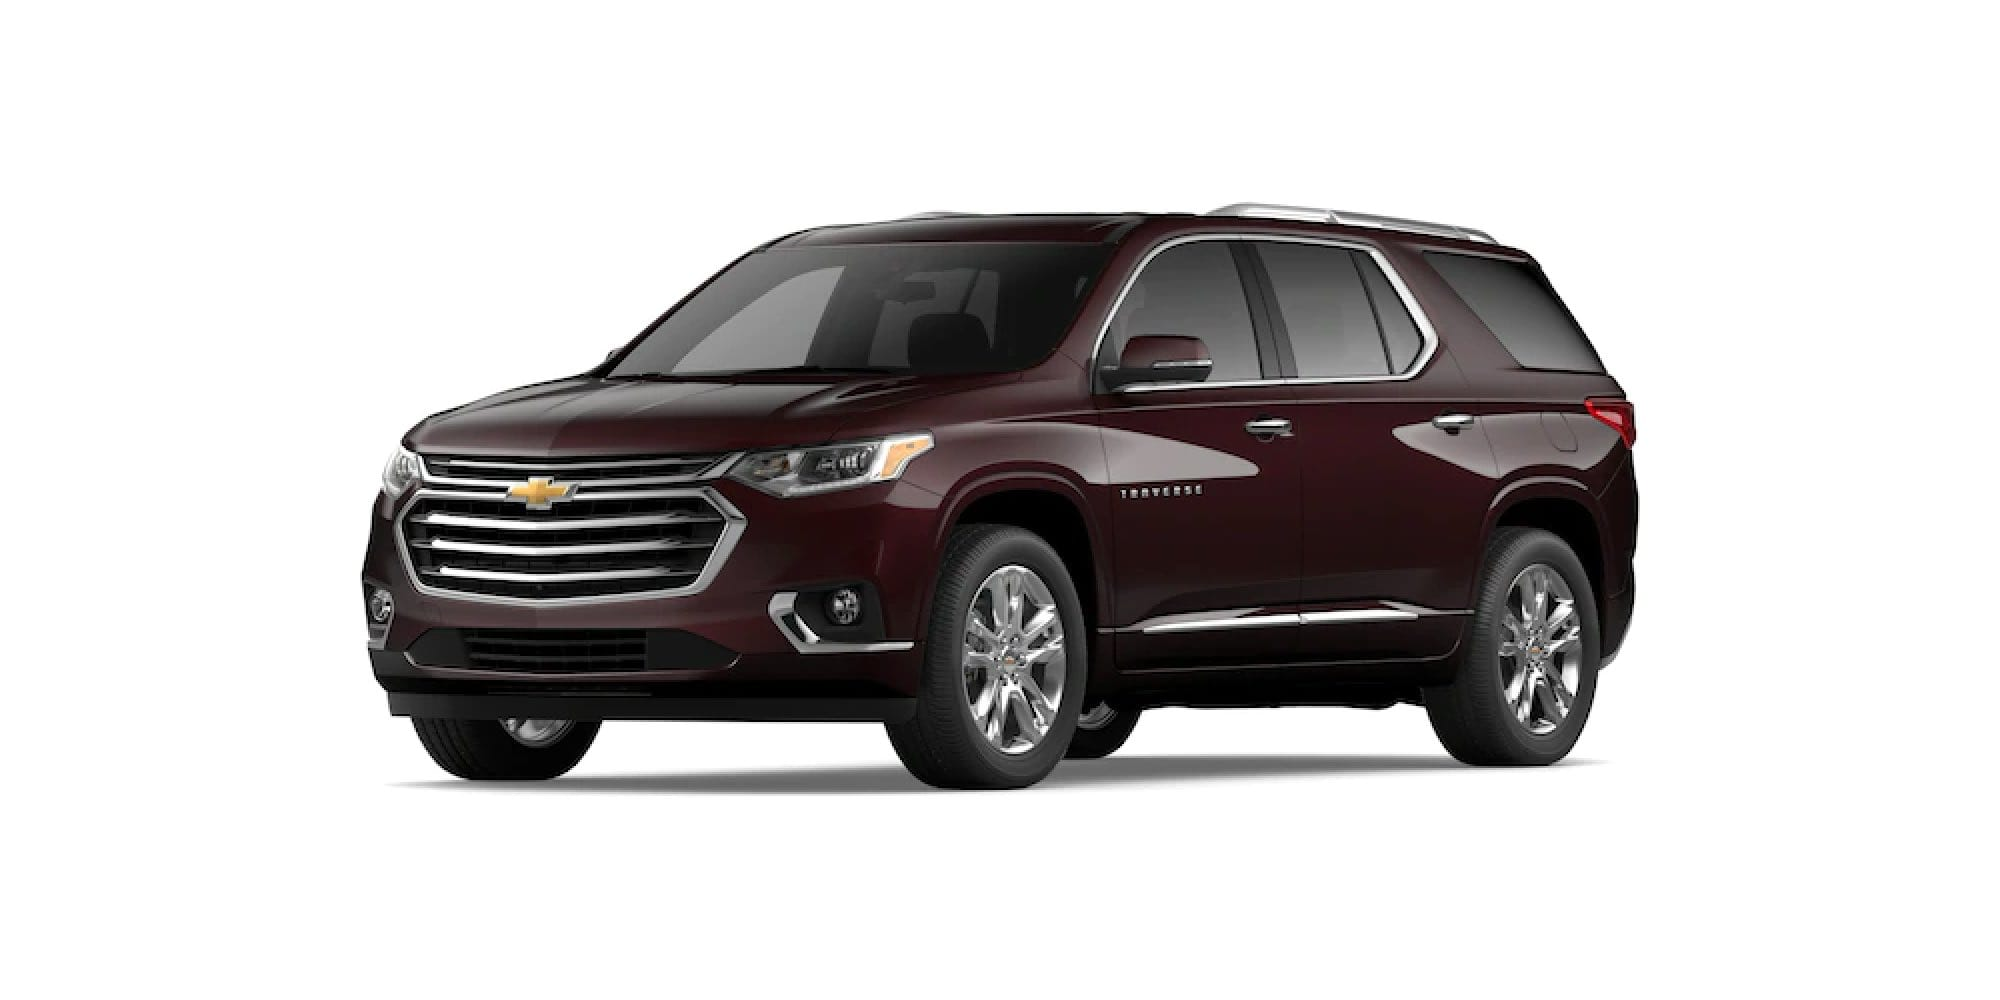 2021 Chevy Traverse in Black Cherry Metallic